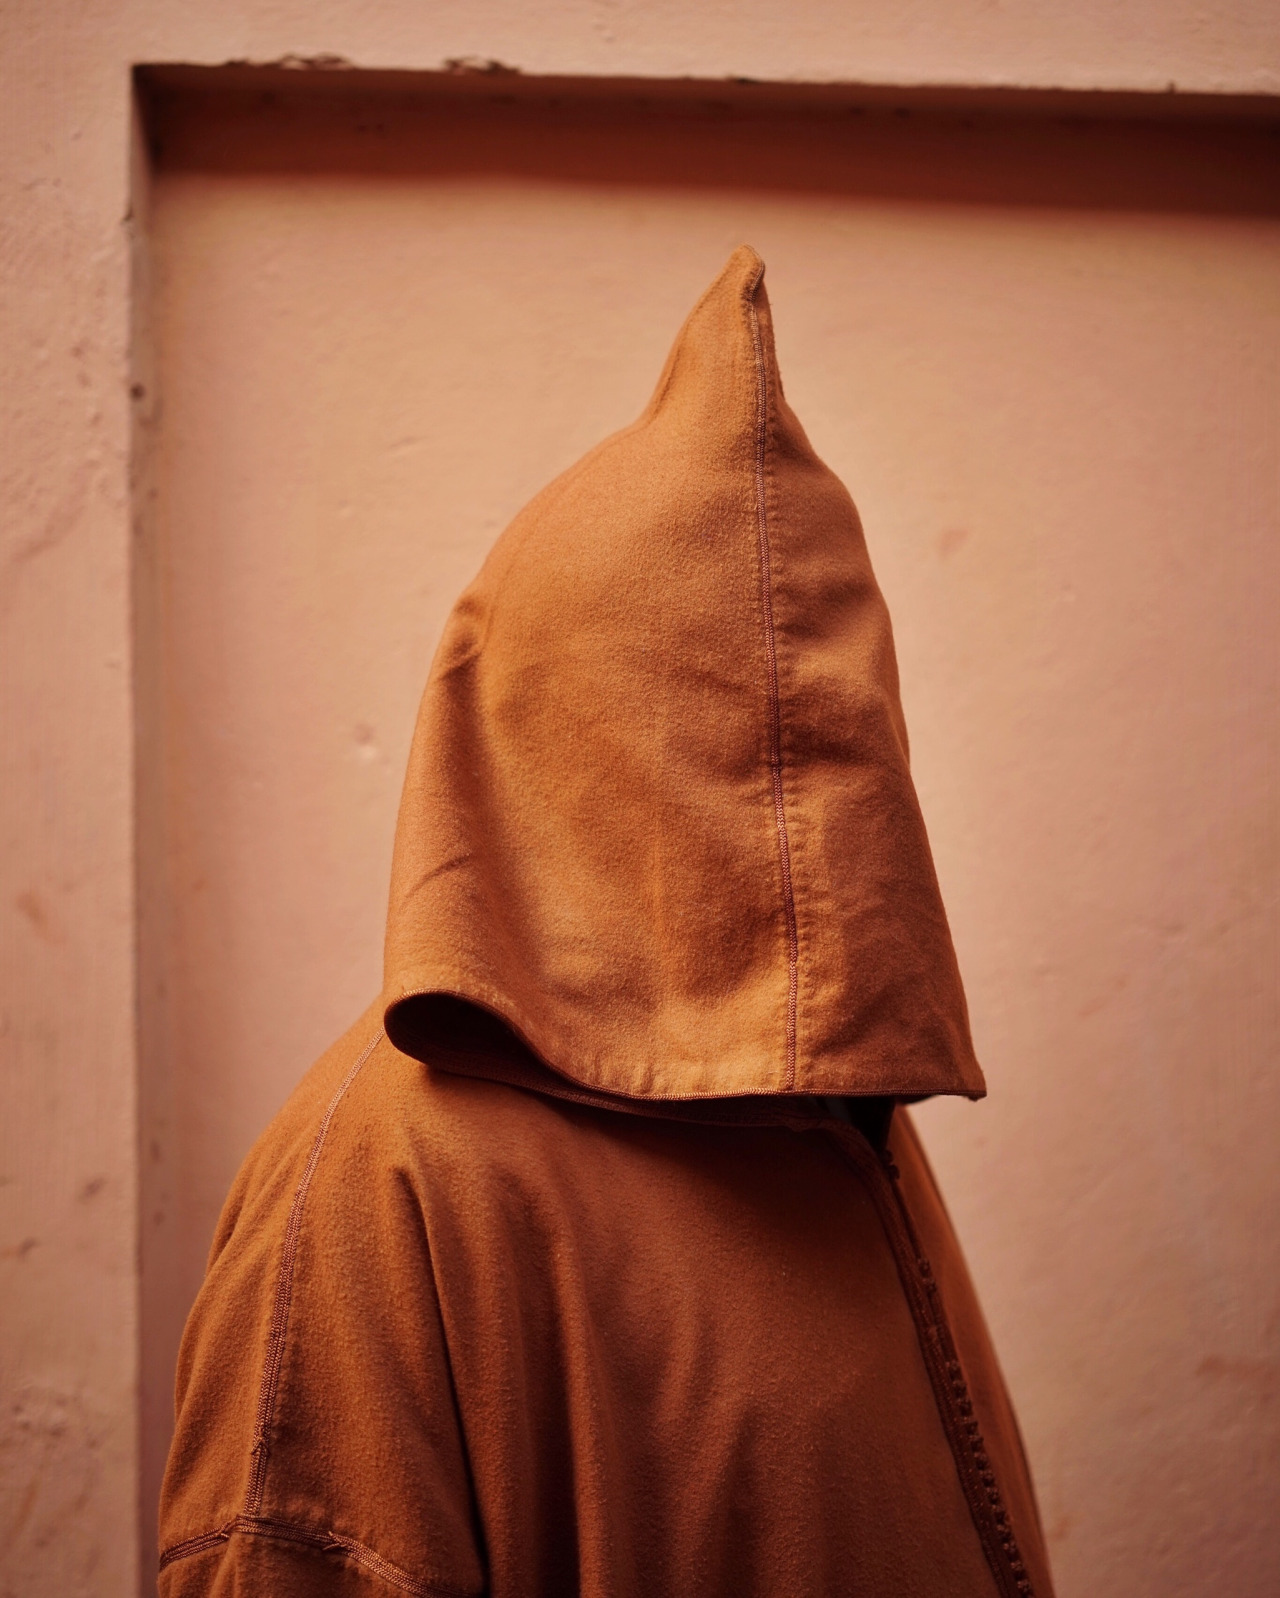 hooded_man